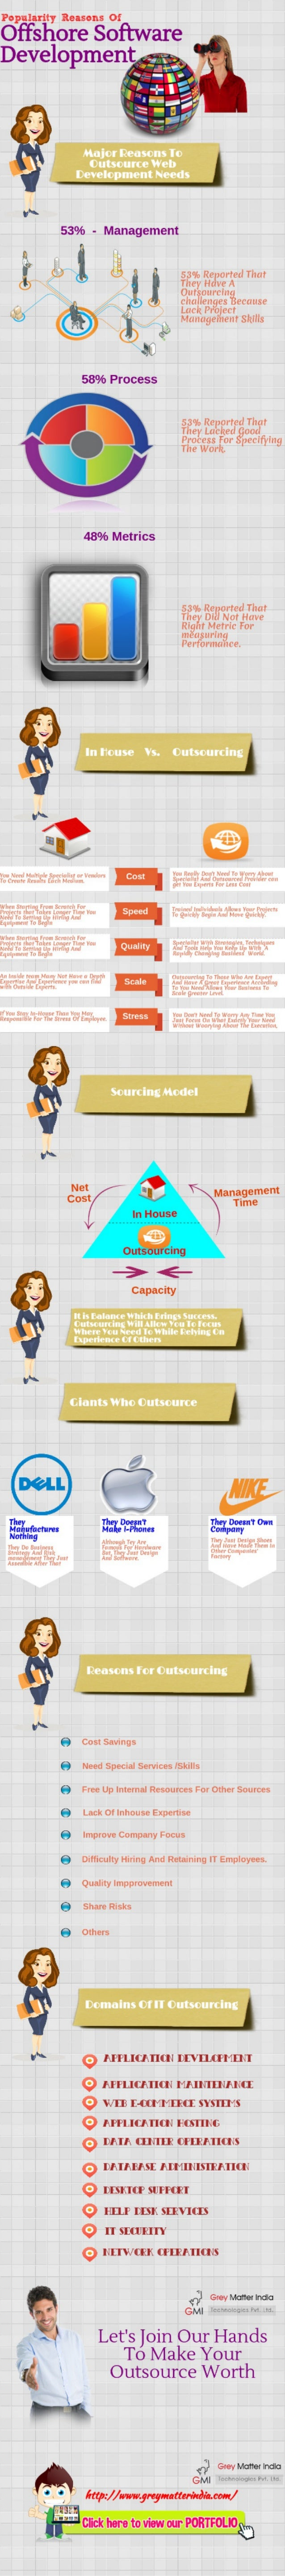 Popularity reasons of offshore software development service